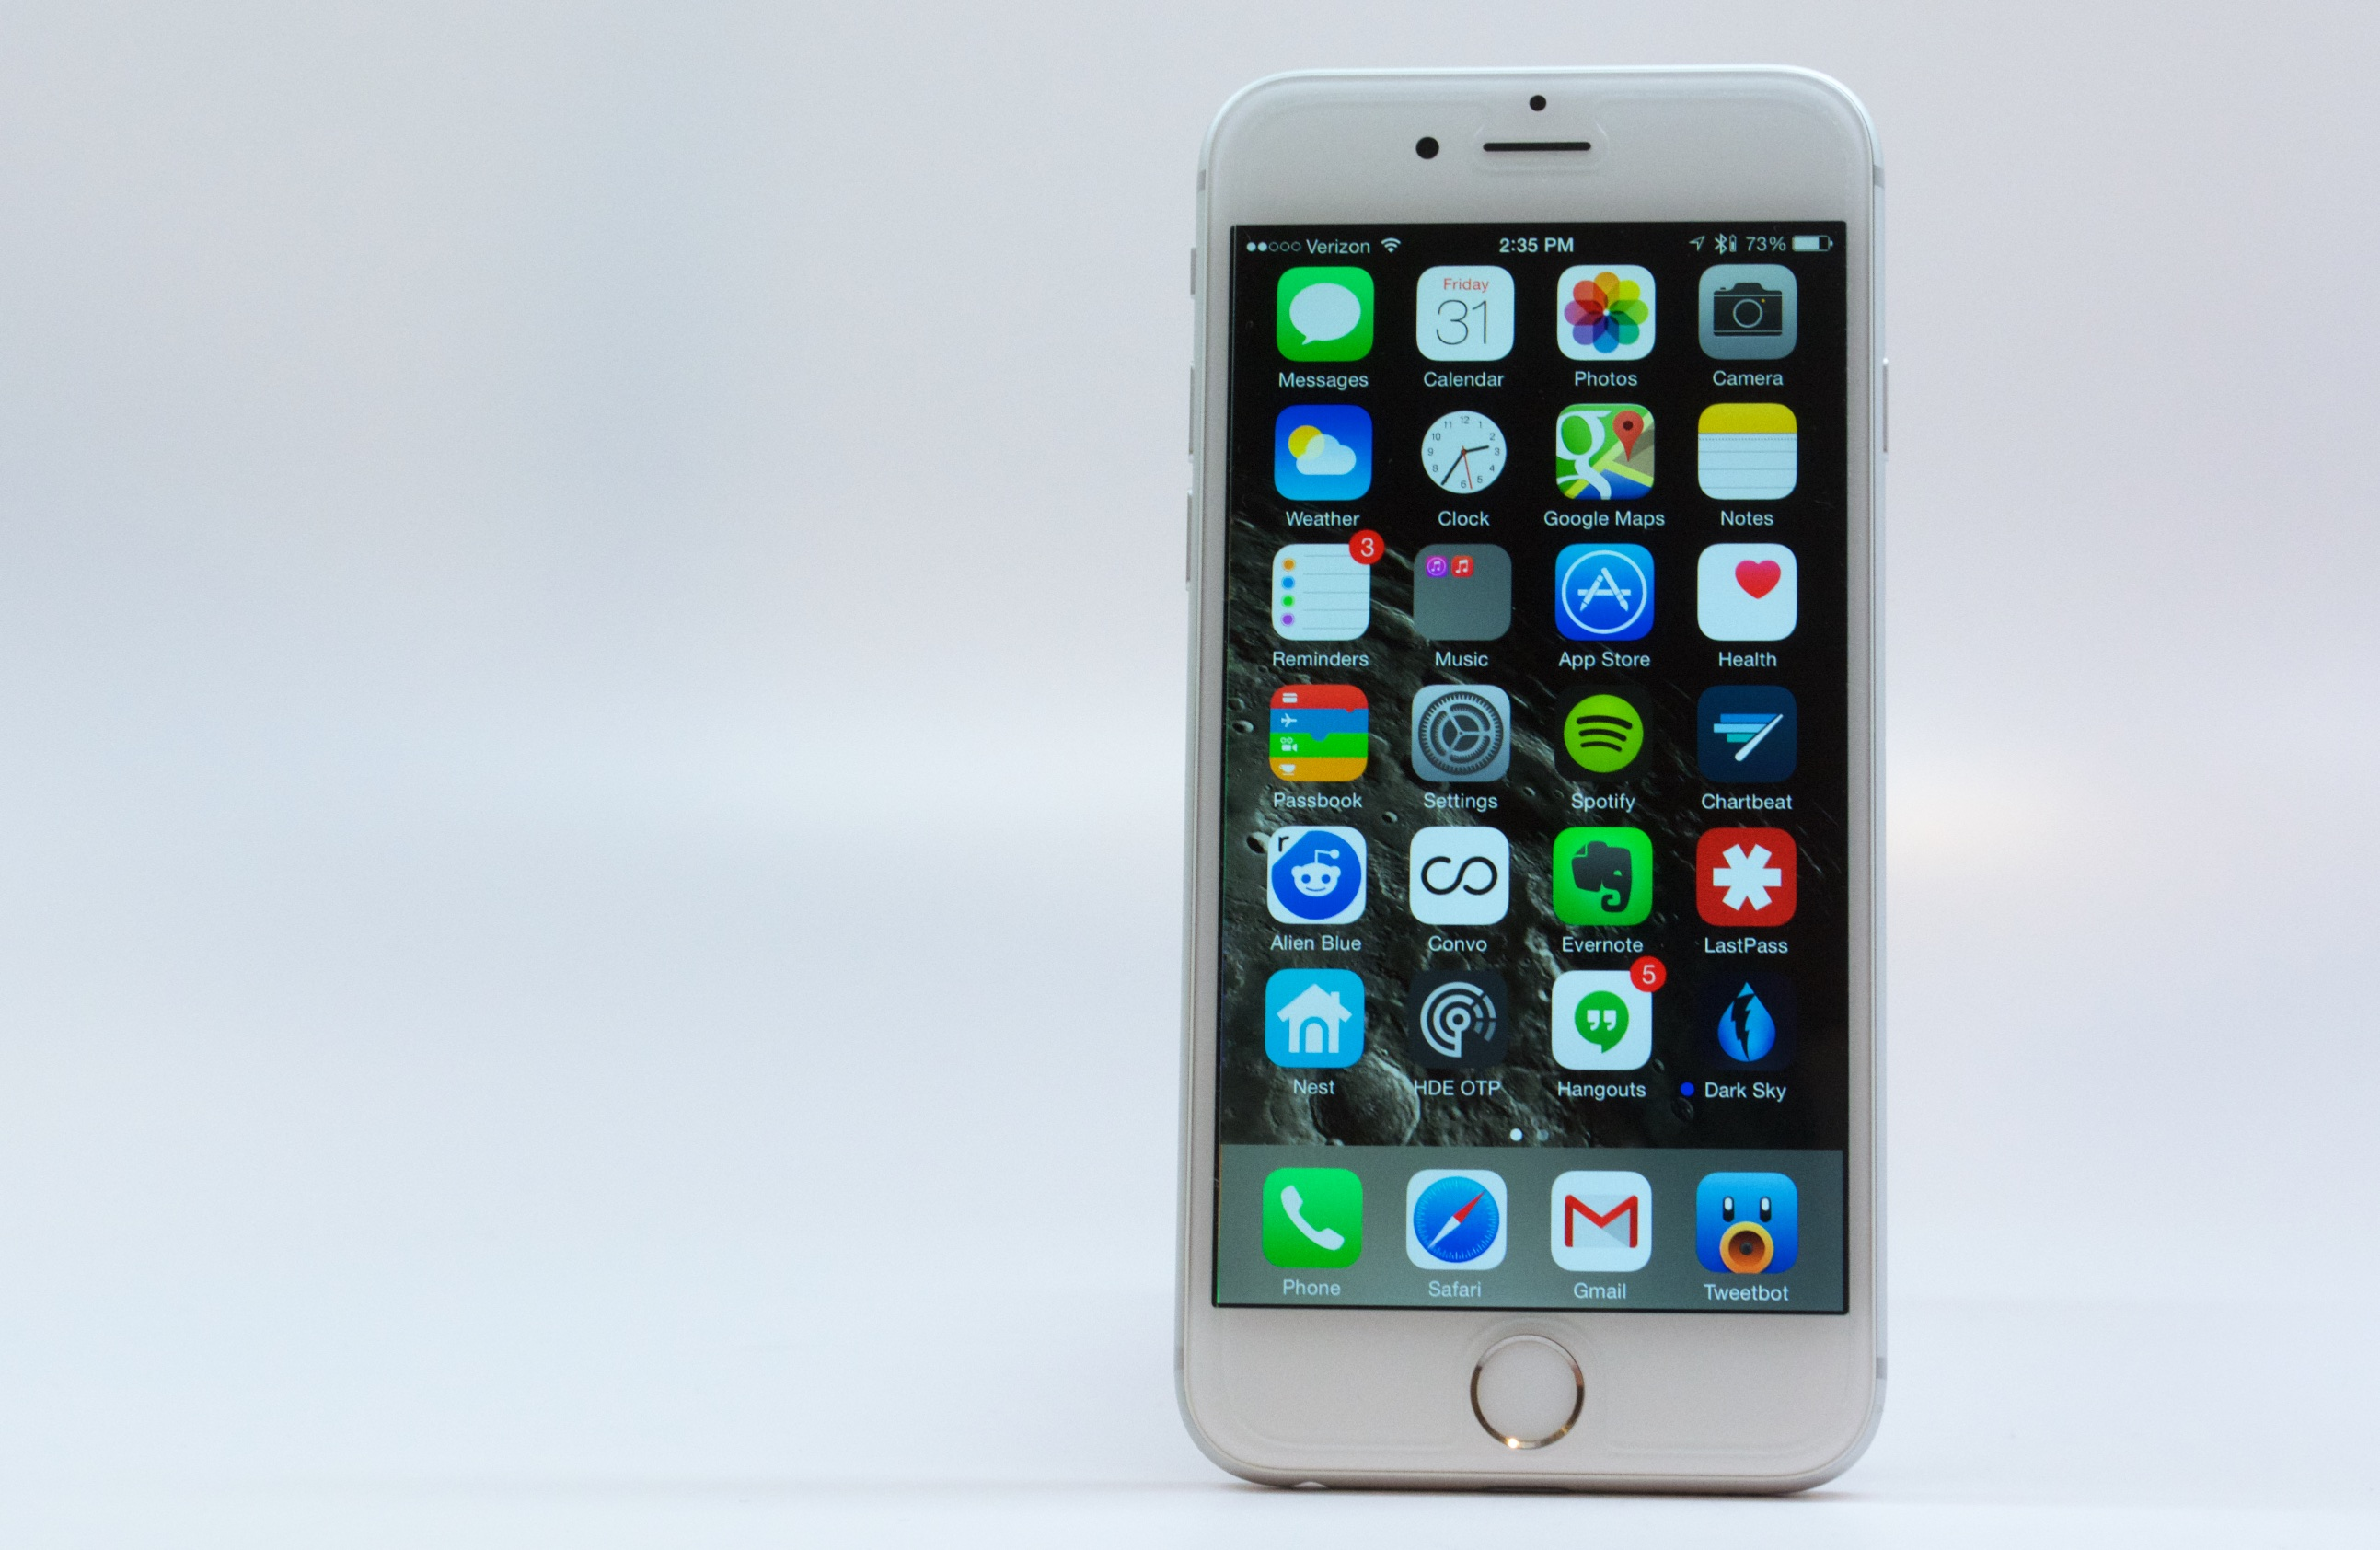 iOS 8 1 1 on iPhone 6: Impressions & Performance